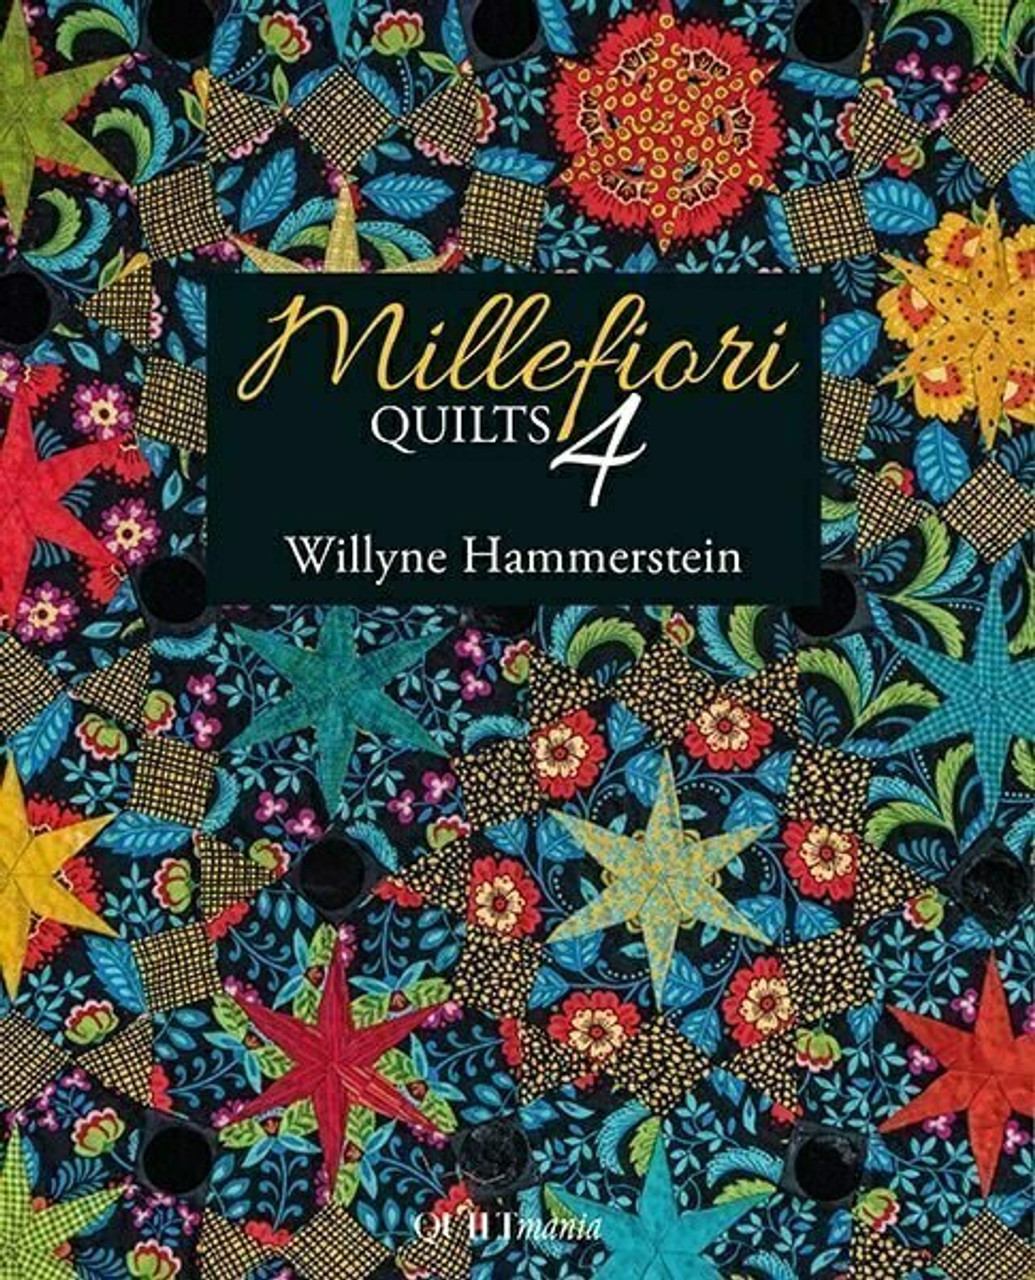 Millefiori Quilts 4 by Willyne Hammerstein